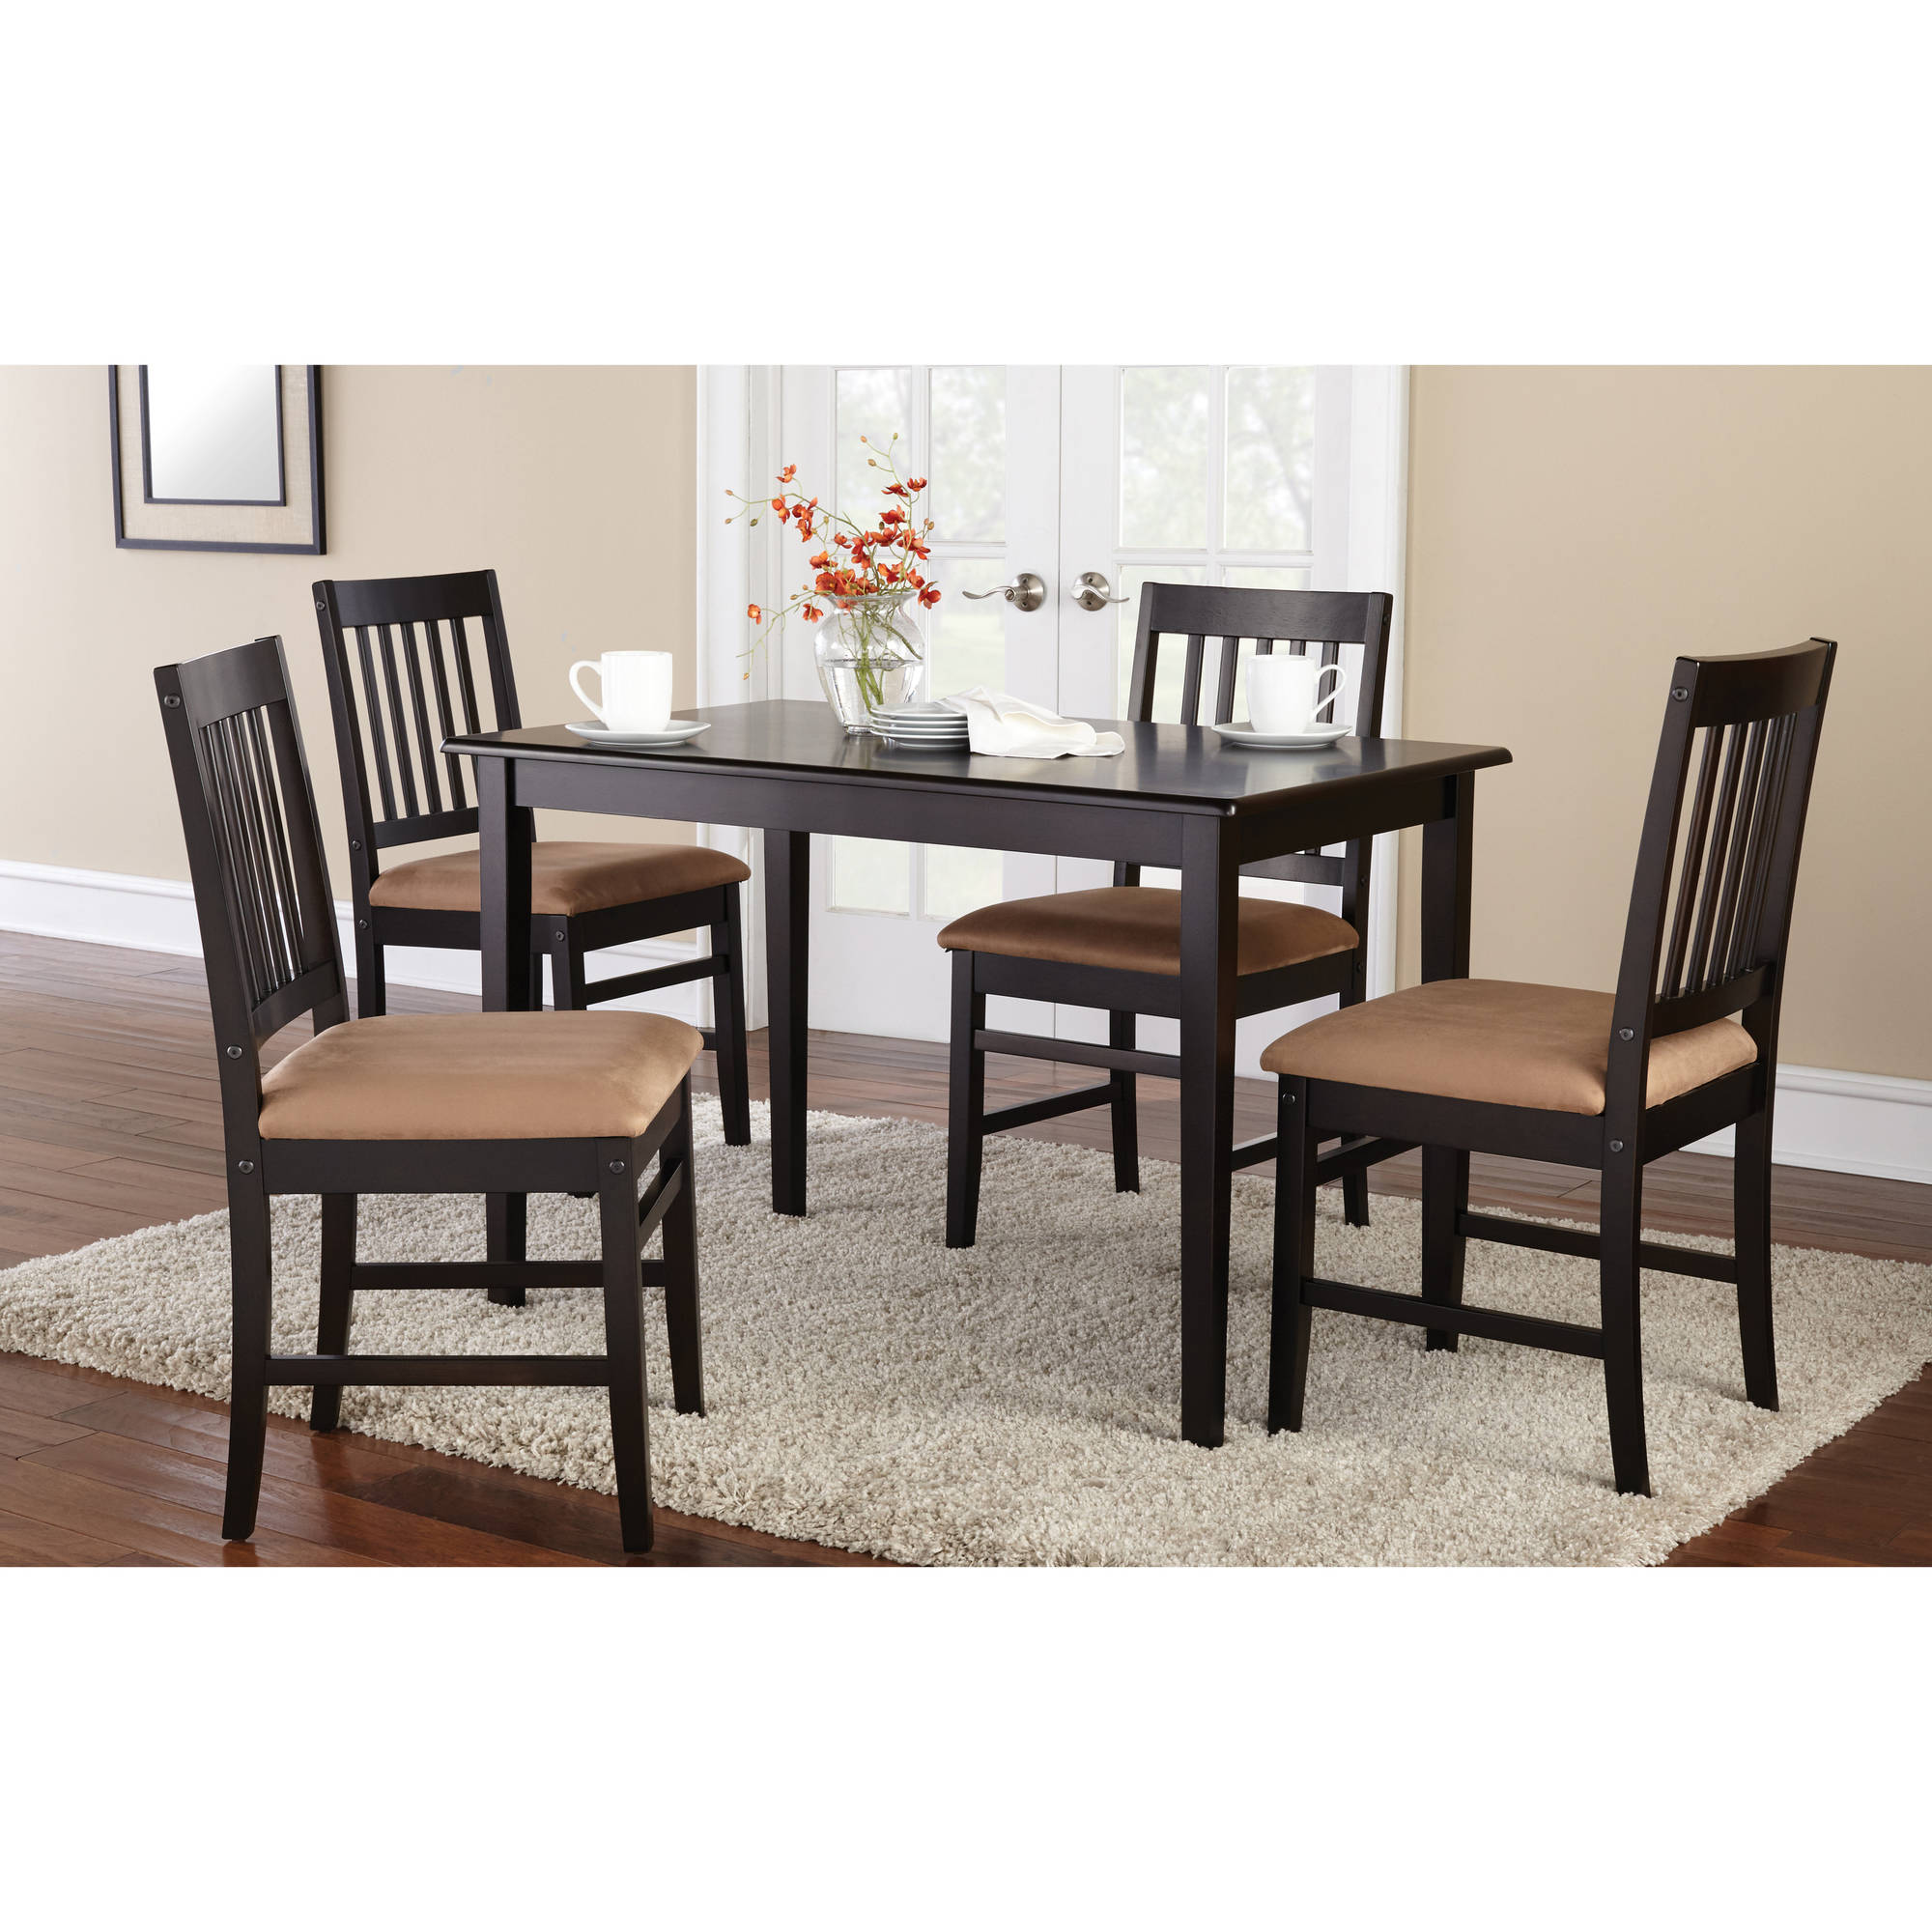 Mainstays 5 Piece Dining Set With Rich Espresso Finish   Walmart.com